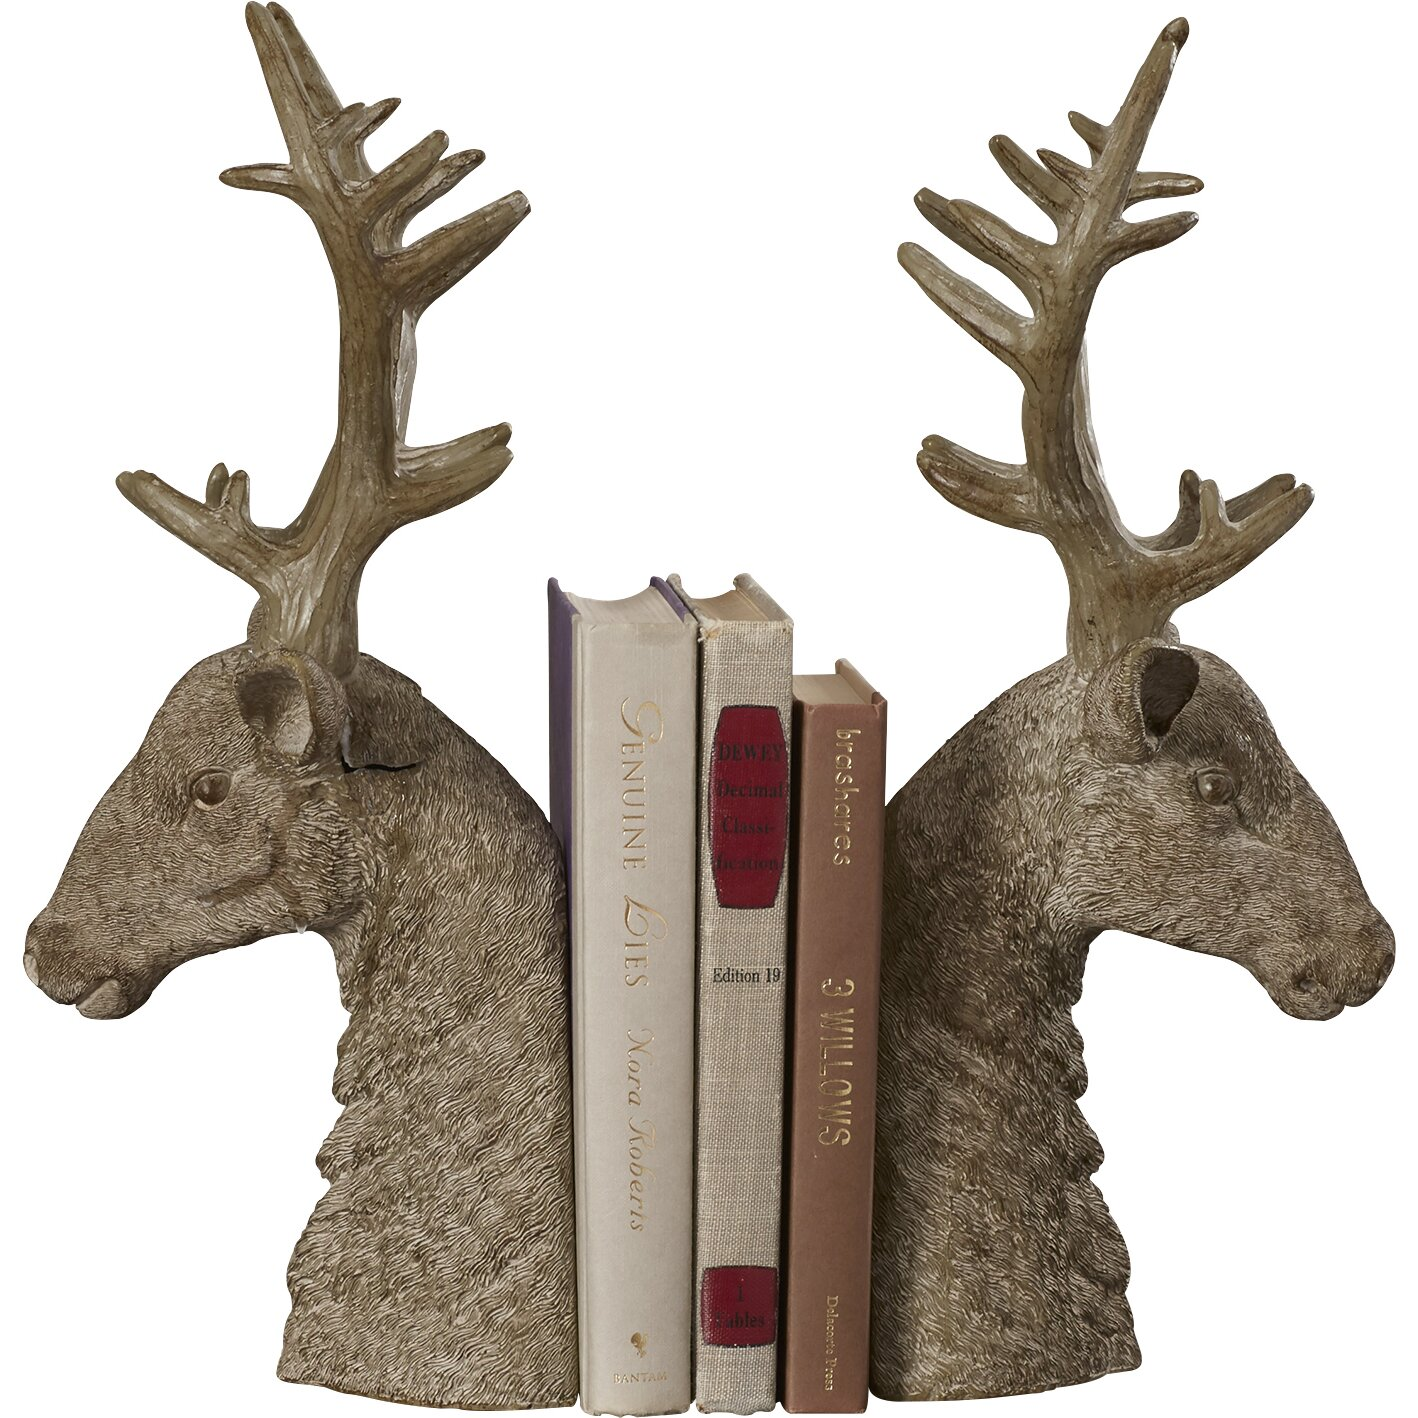 Loon peak pleasant view stag bookend reviews wayfair - Stag book ends ...